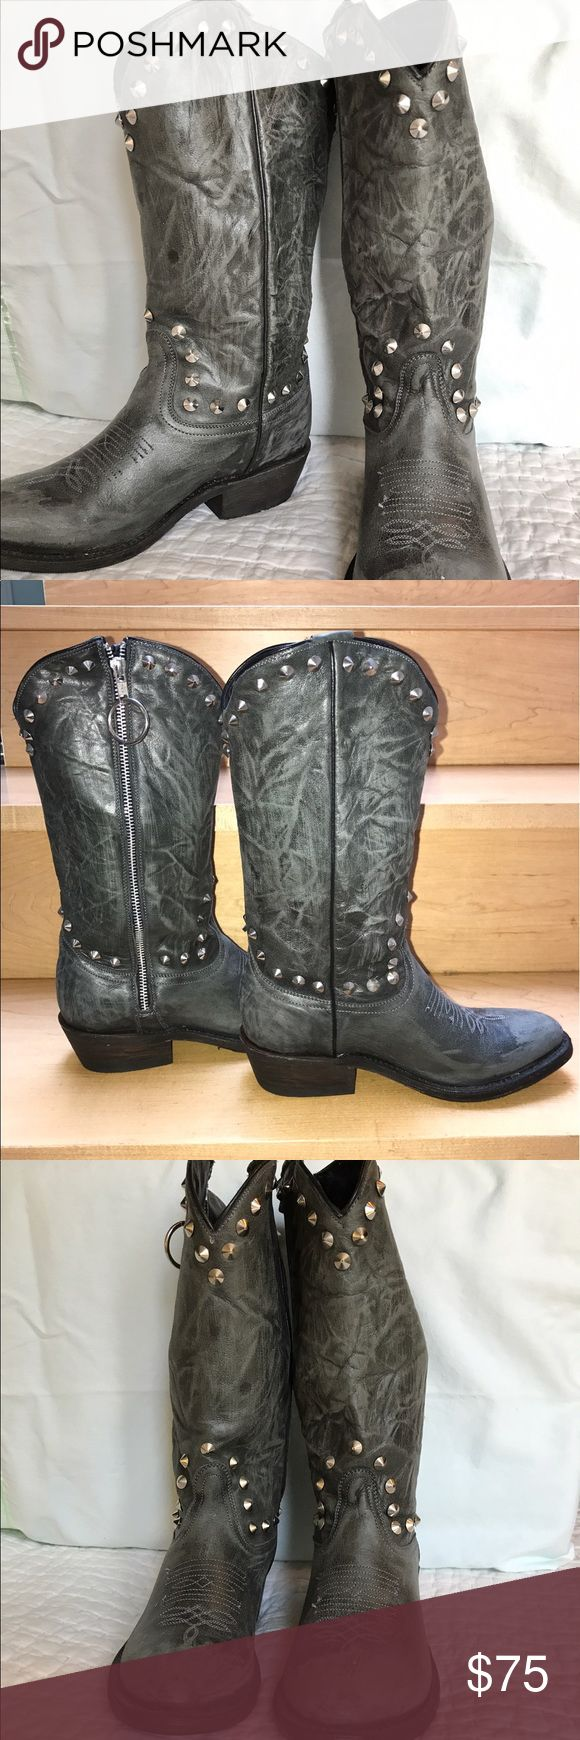 ASH Italia grey studded Cowboy boot Grey cowboy boot, with studs and lightly distressed. Leather. Vibram sole. New never worn. No box:( high quality Italian boot Ash Shoes Heeled Boots